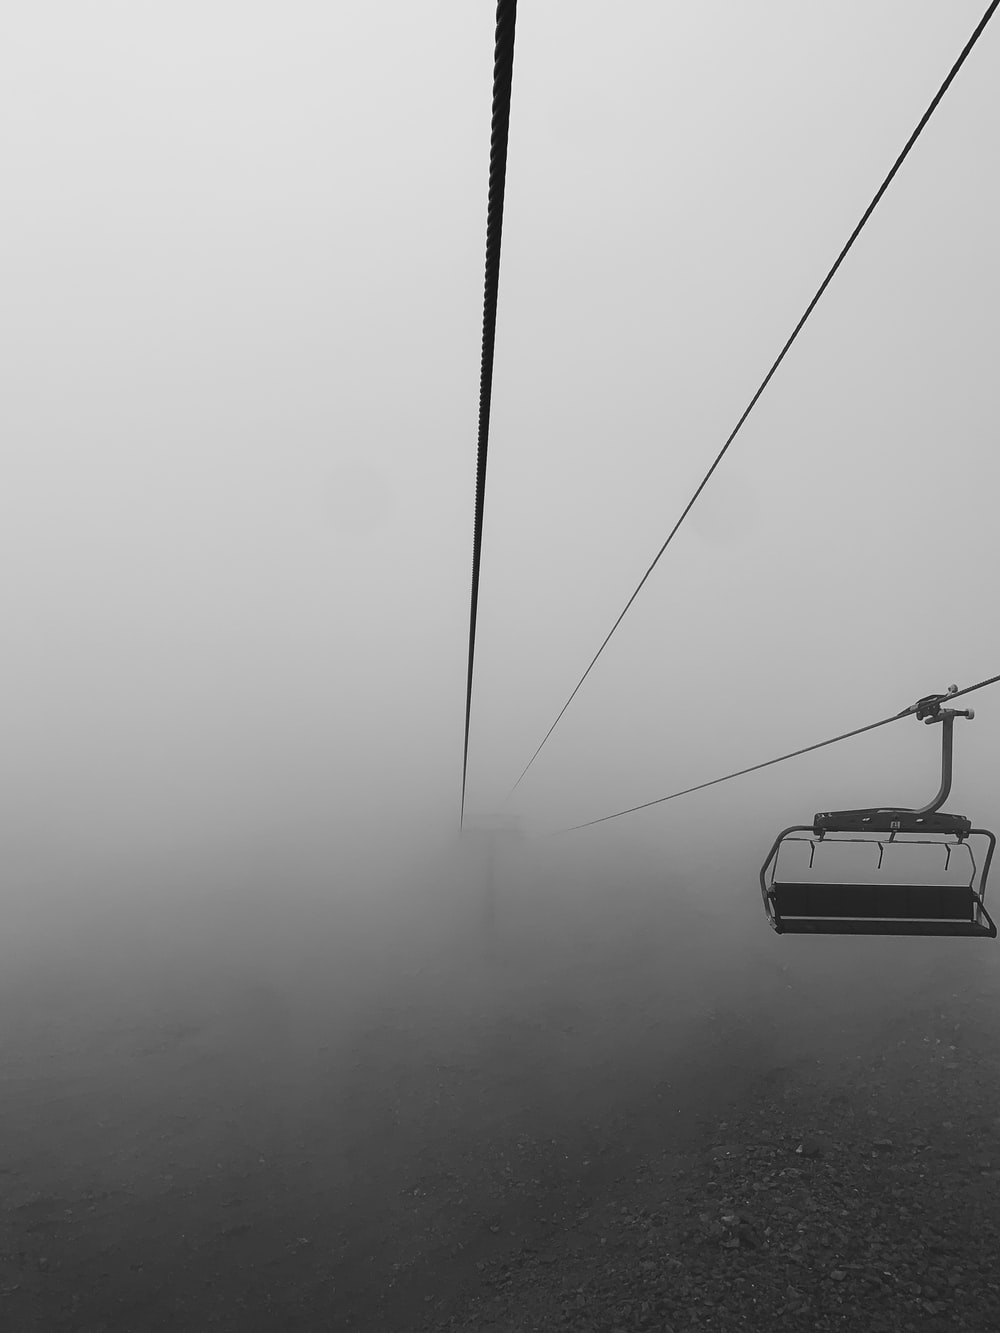 black cable car on gray scale